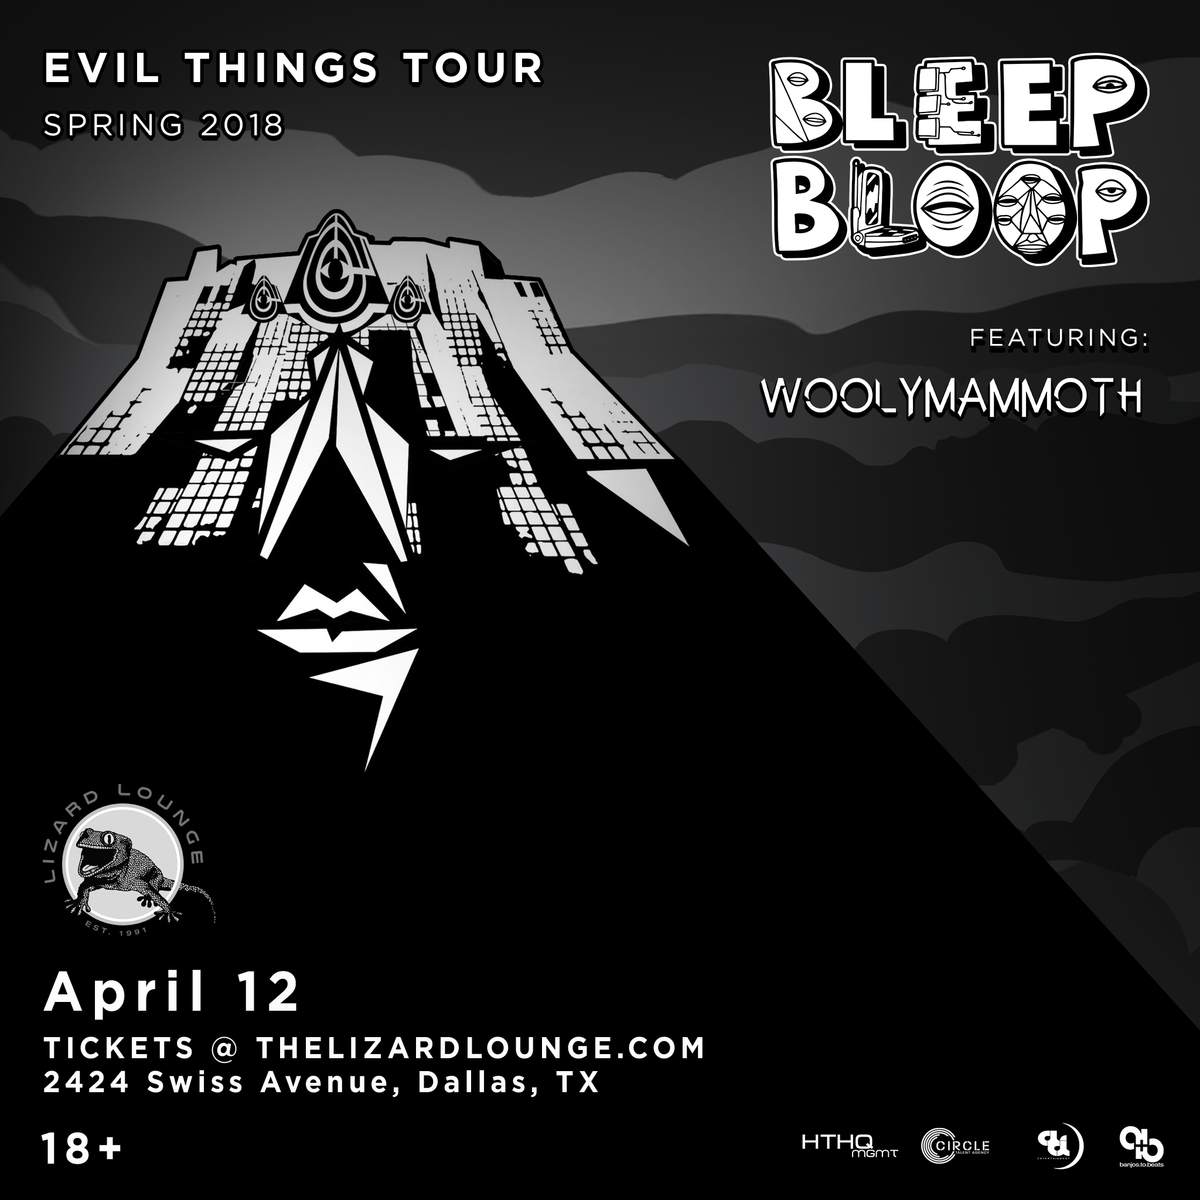 Bleep Bloop Dallas TX